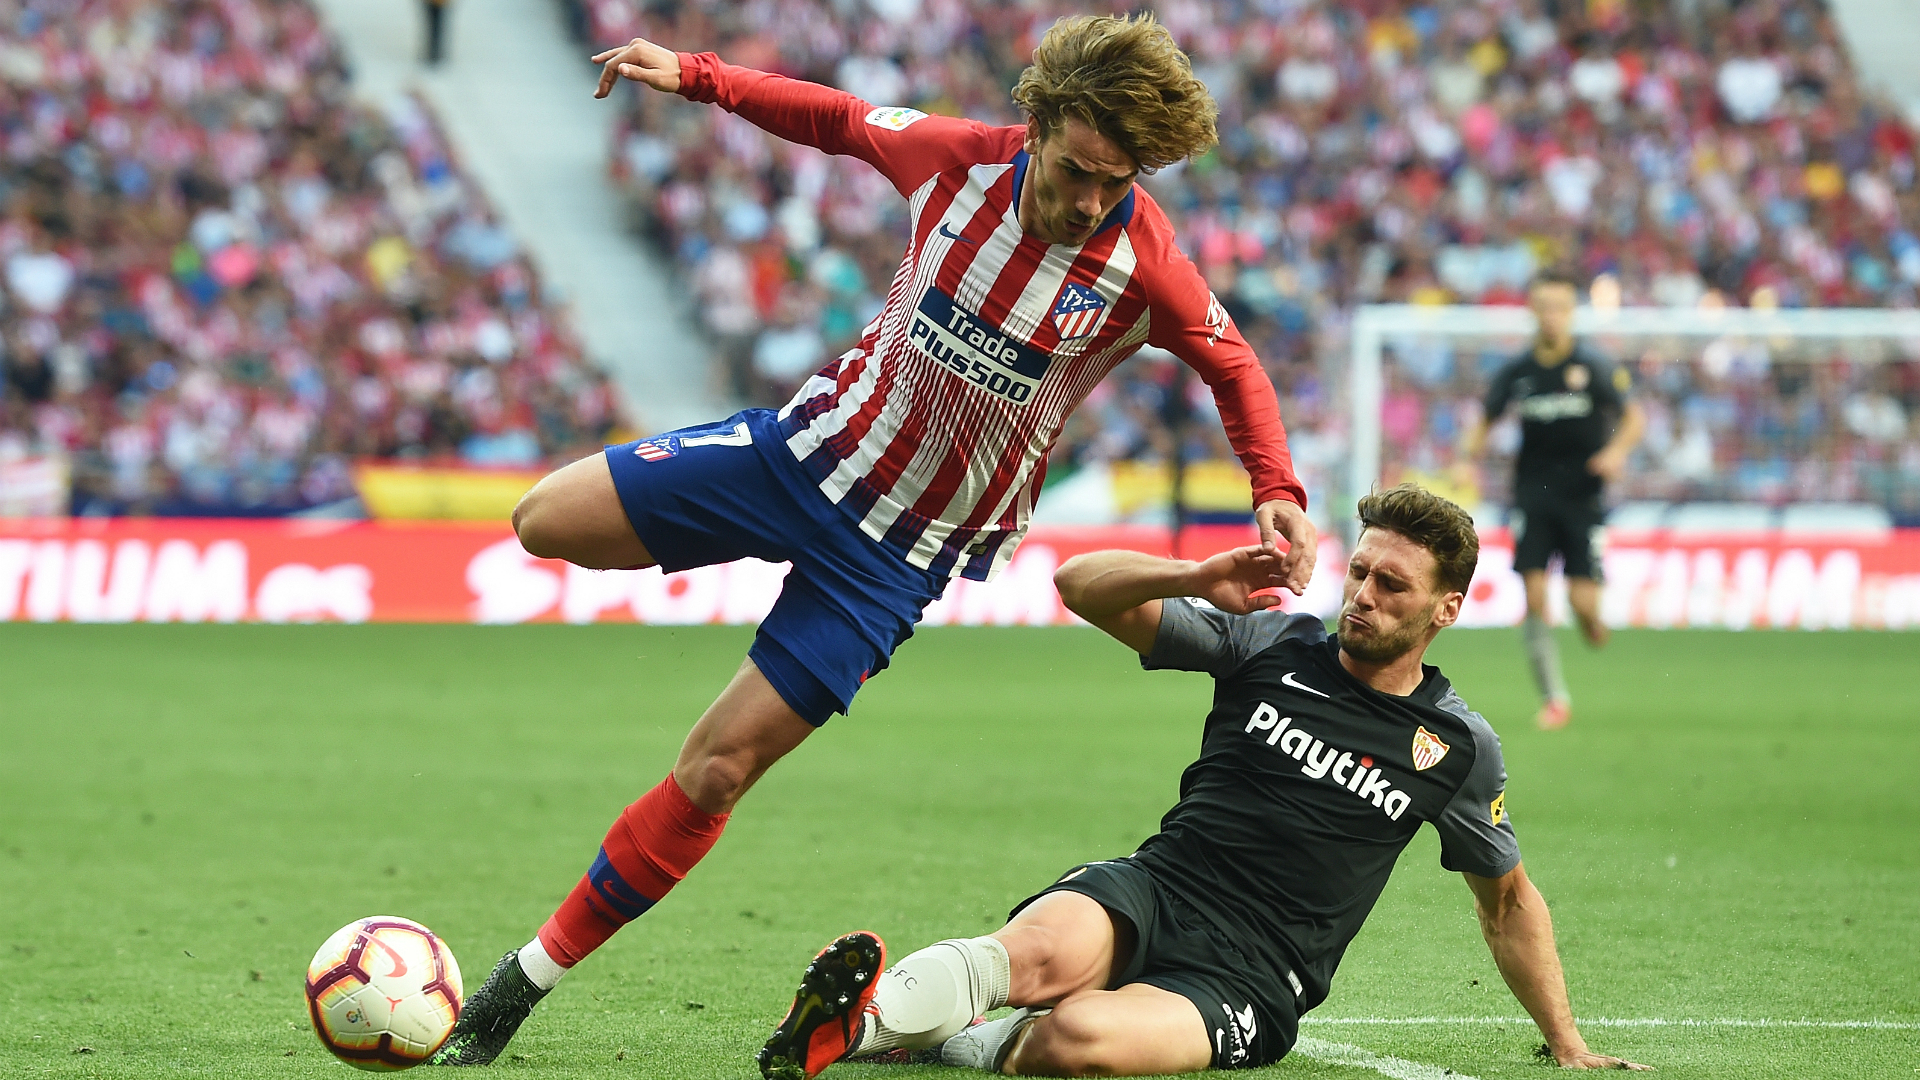 Antoine Griezmann has confirmed that he is leaving Atletico Madrid this summer